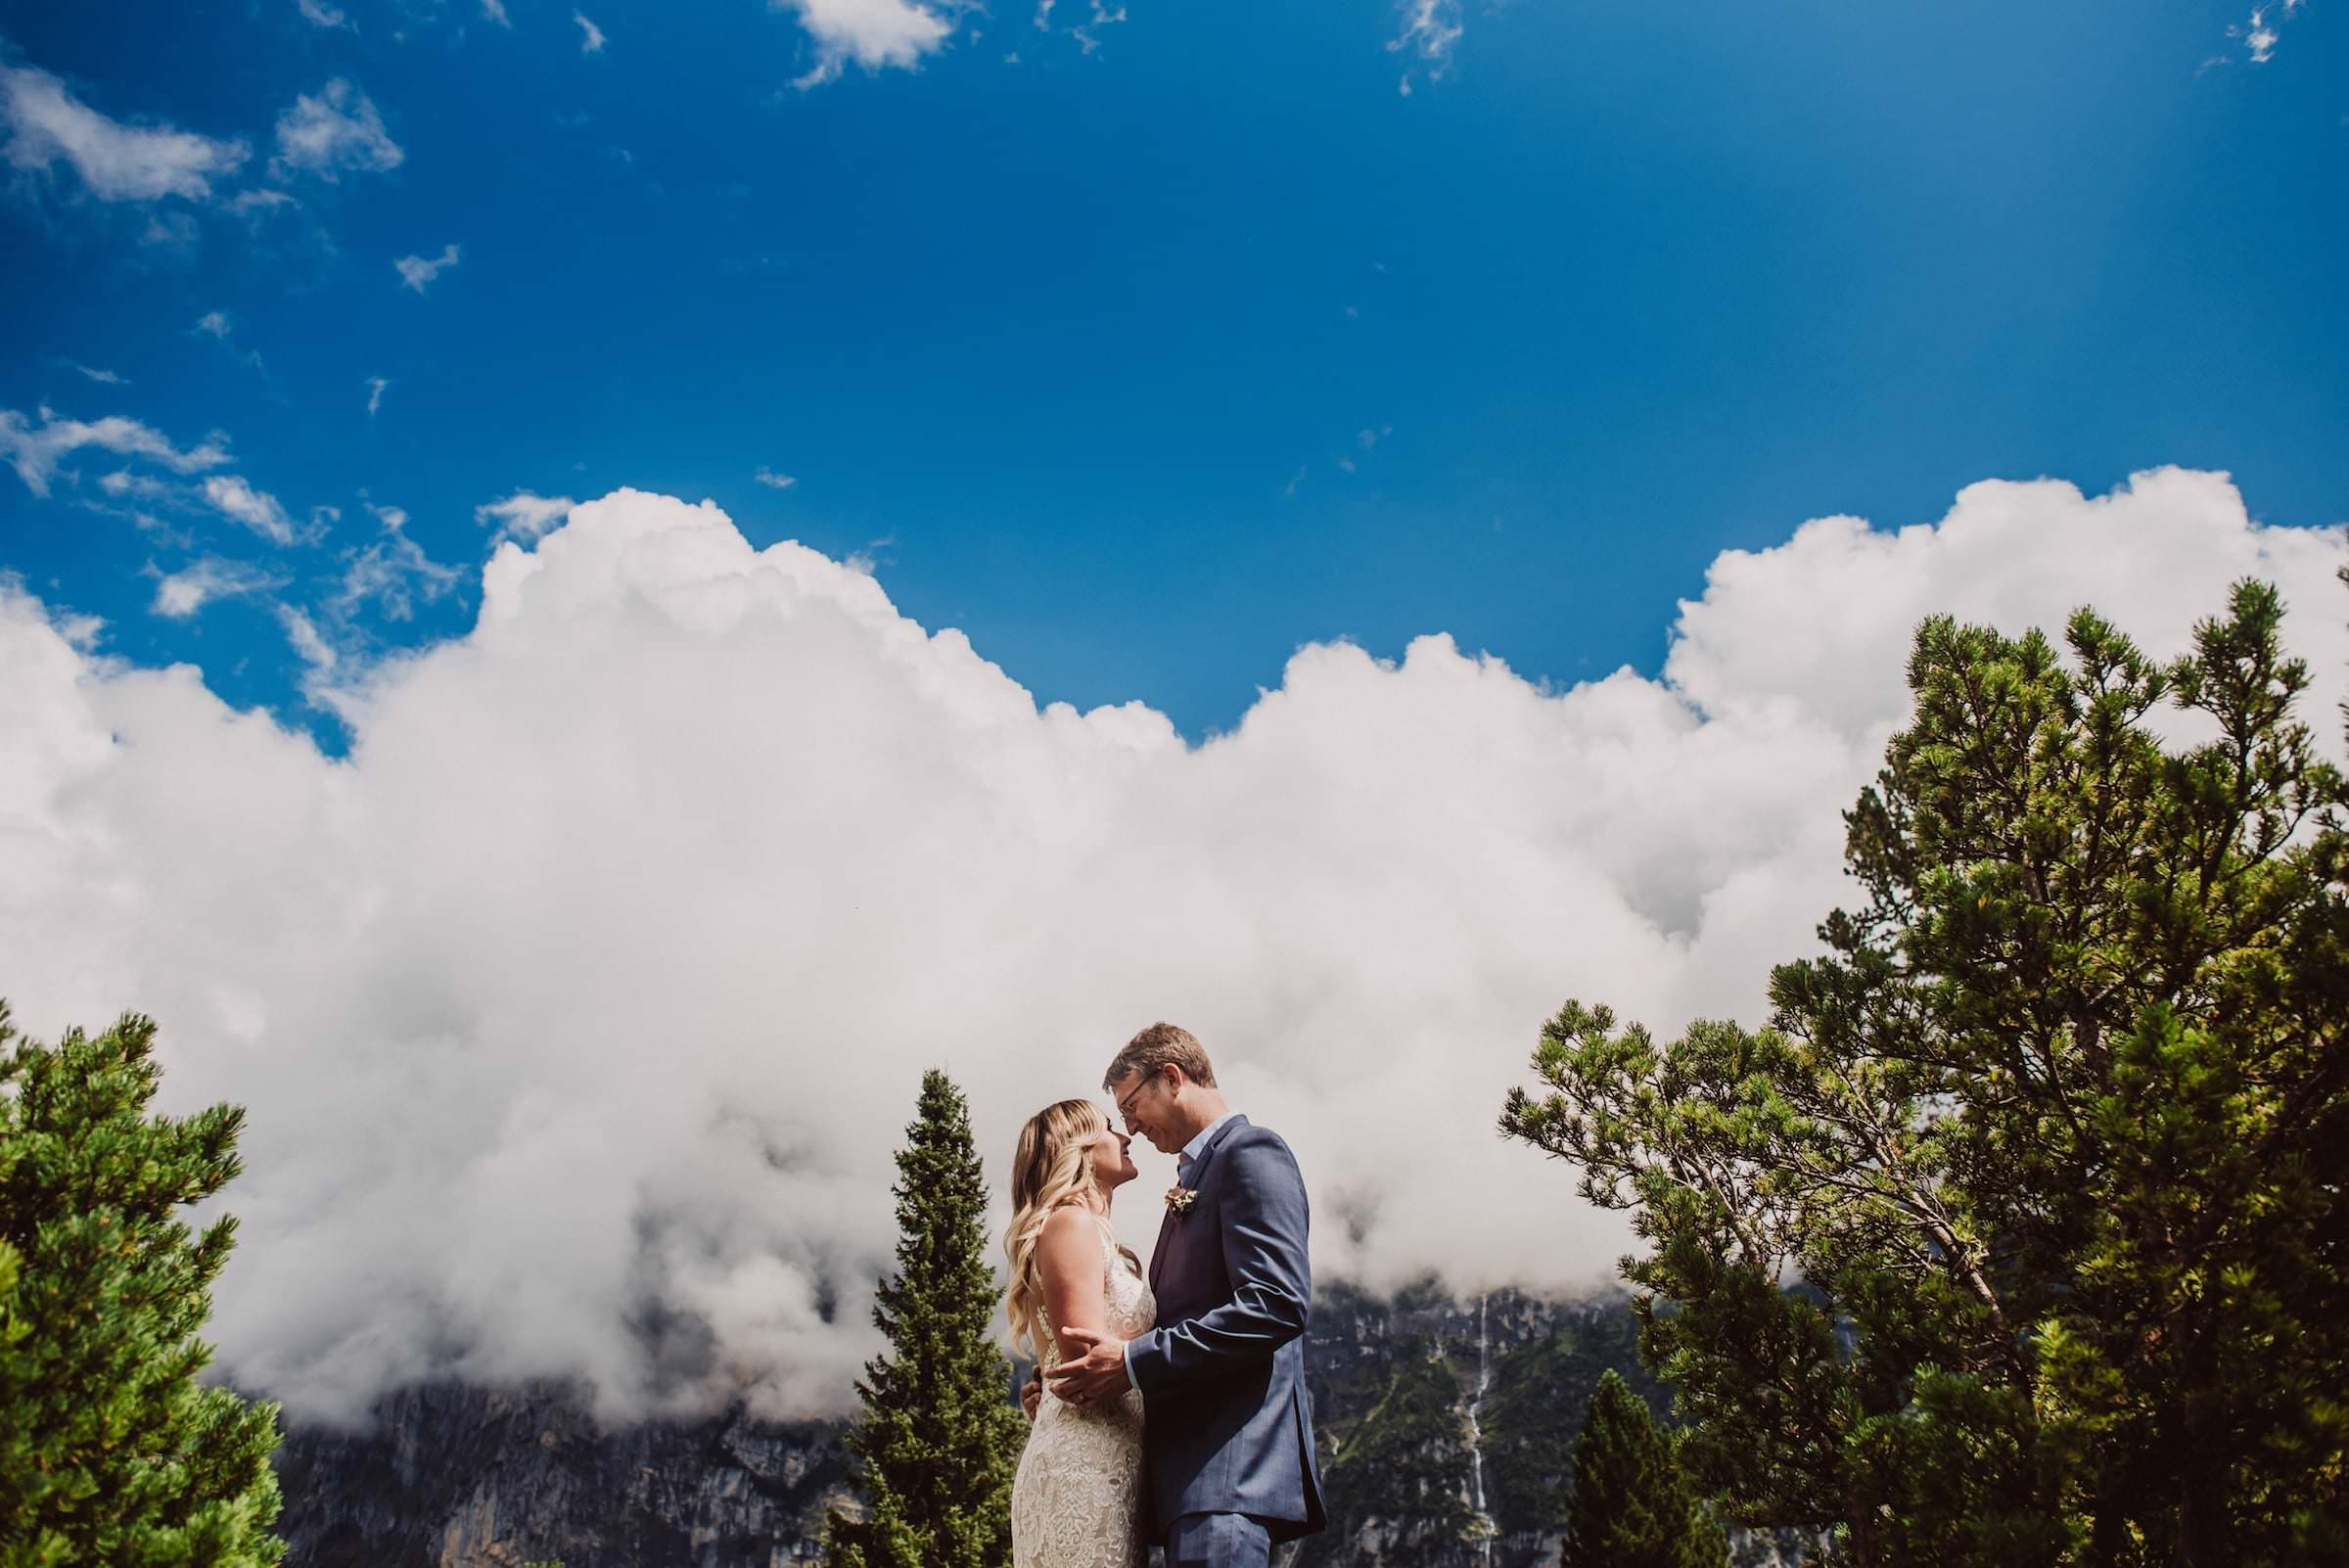 50 mountain wedding switzerland portrait time - Mountain Wedding Switzerland